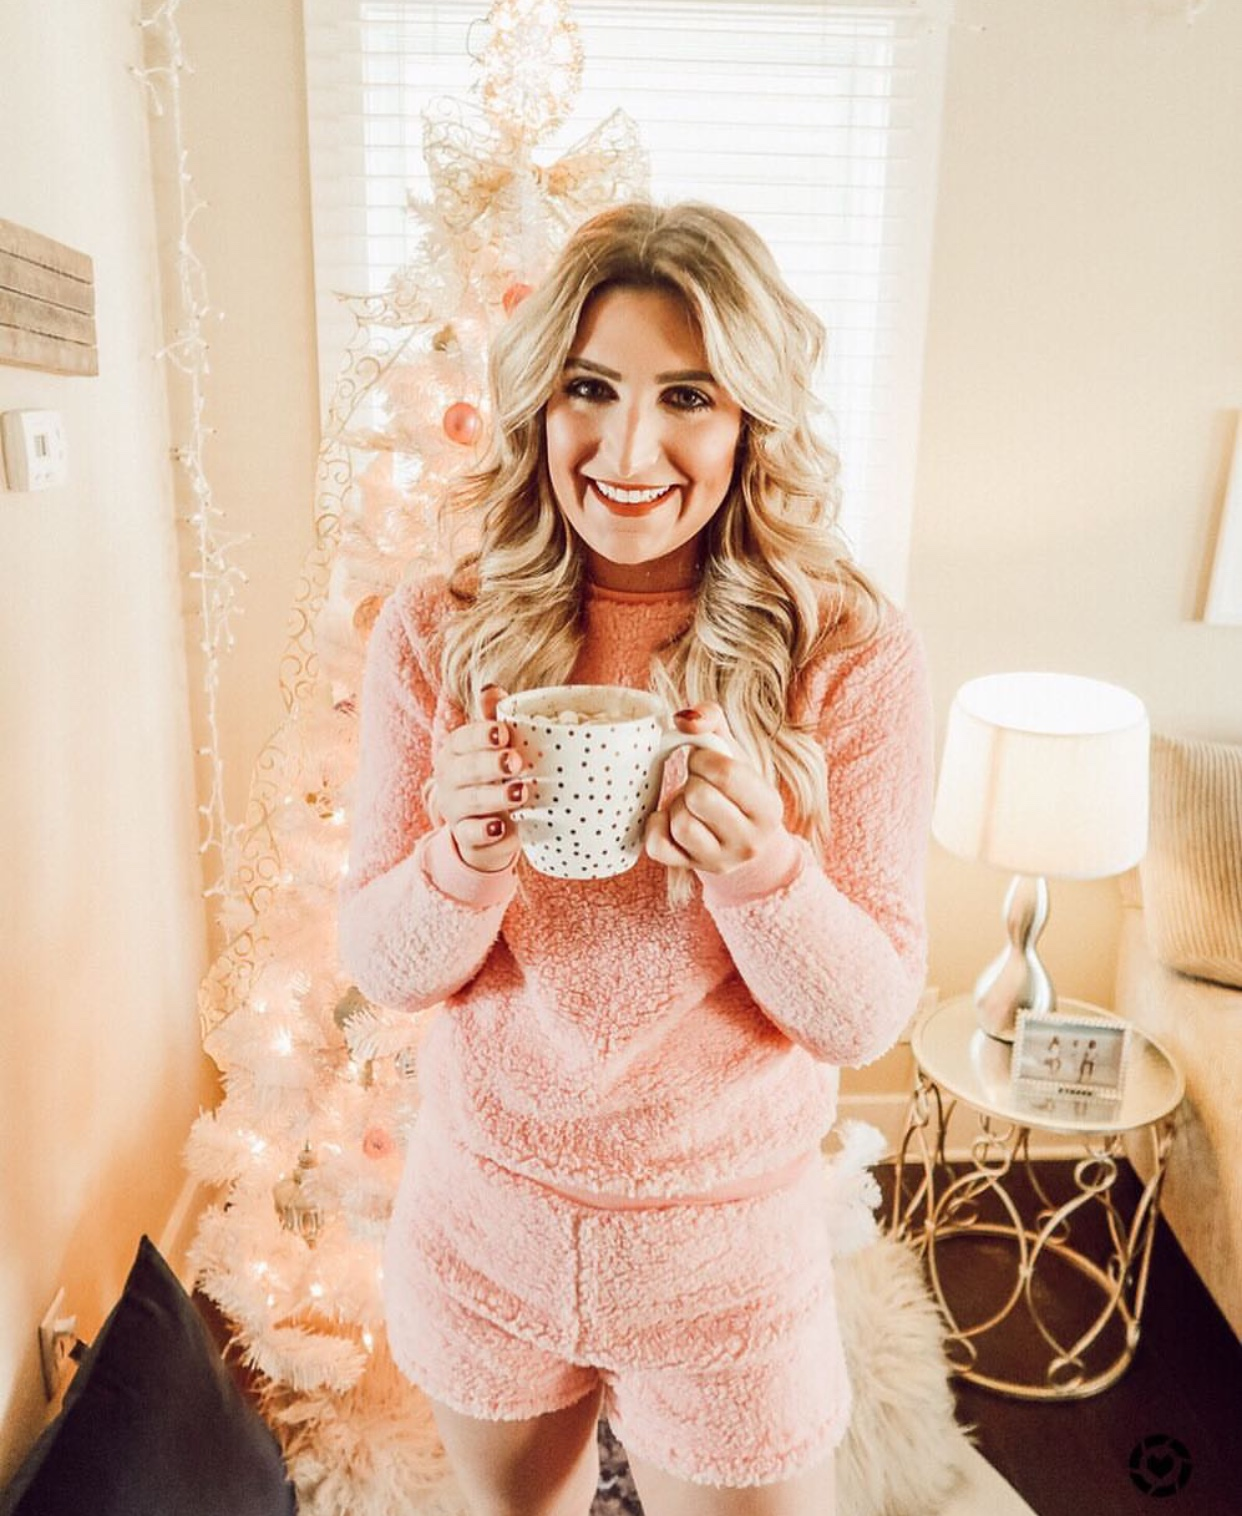 Pink Pajamas | IG Round-Up | Audrey Madison Stowe a fashion and lifestyle blogger